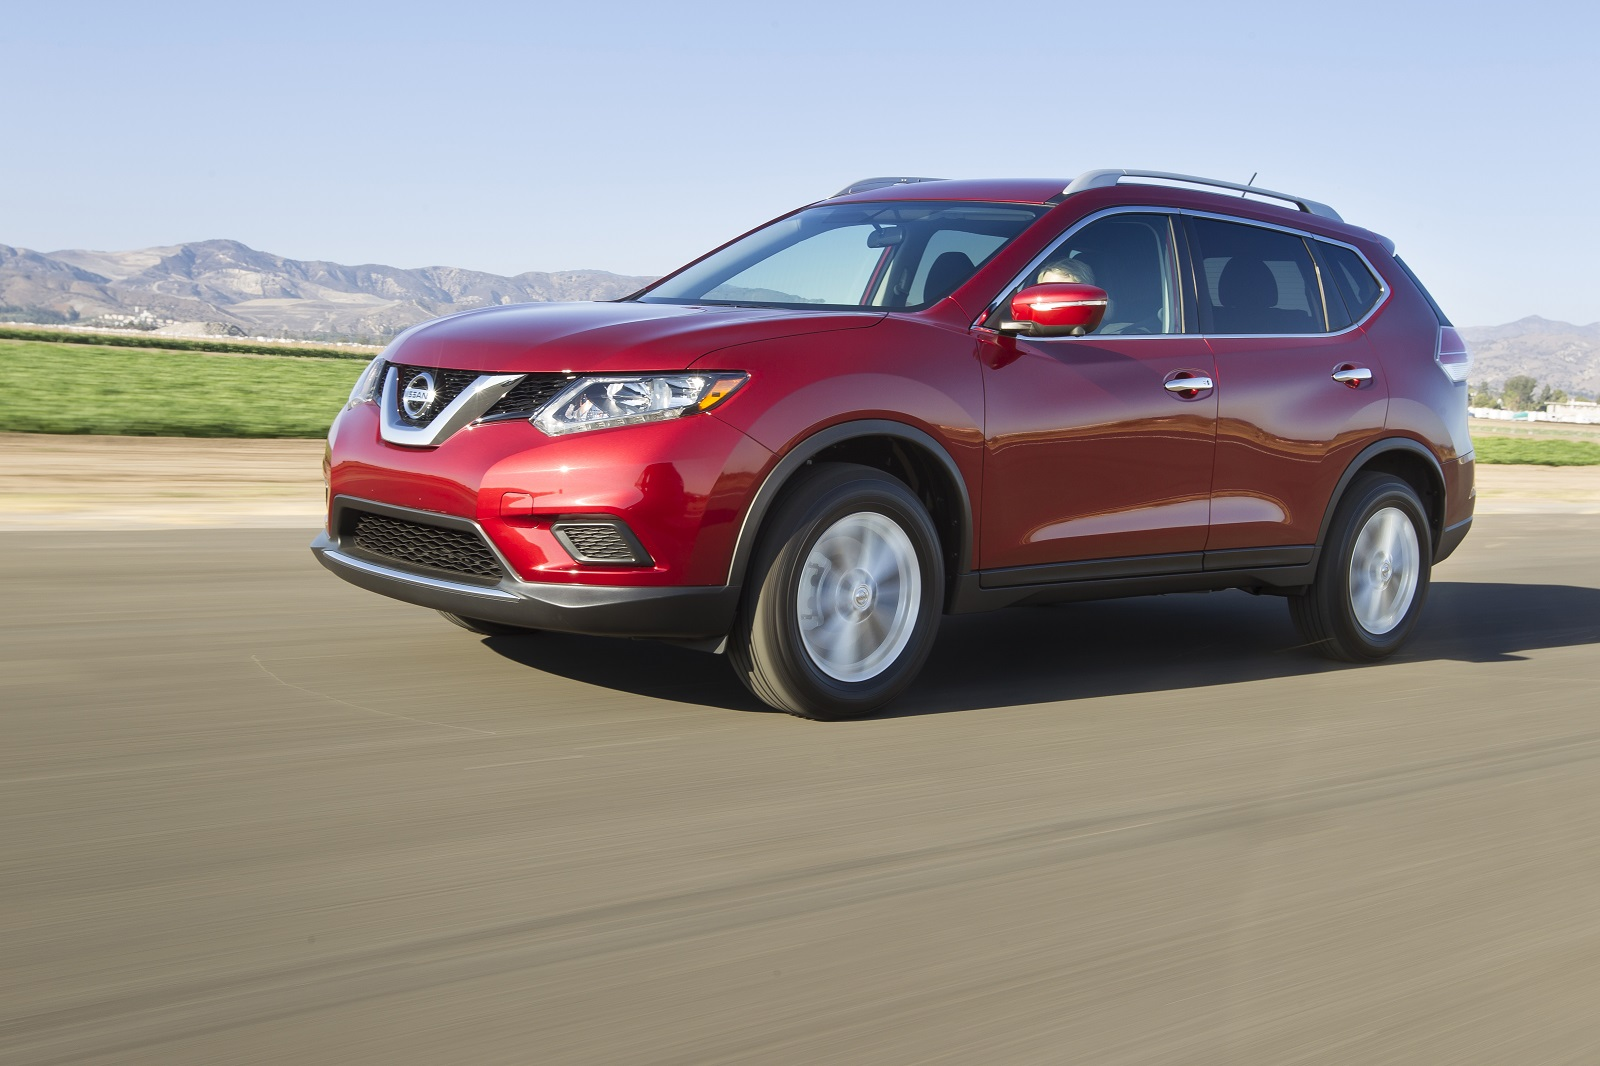 2014 nissan rogue crossover full details from frankfurt auto show vanachro Image collections